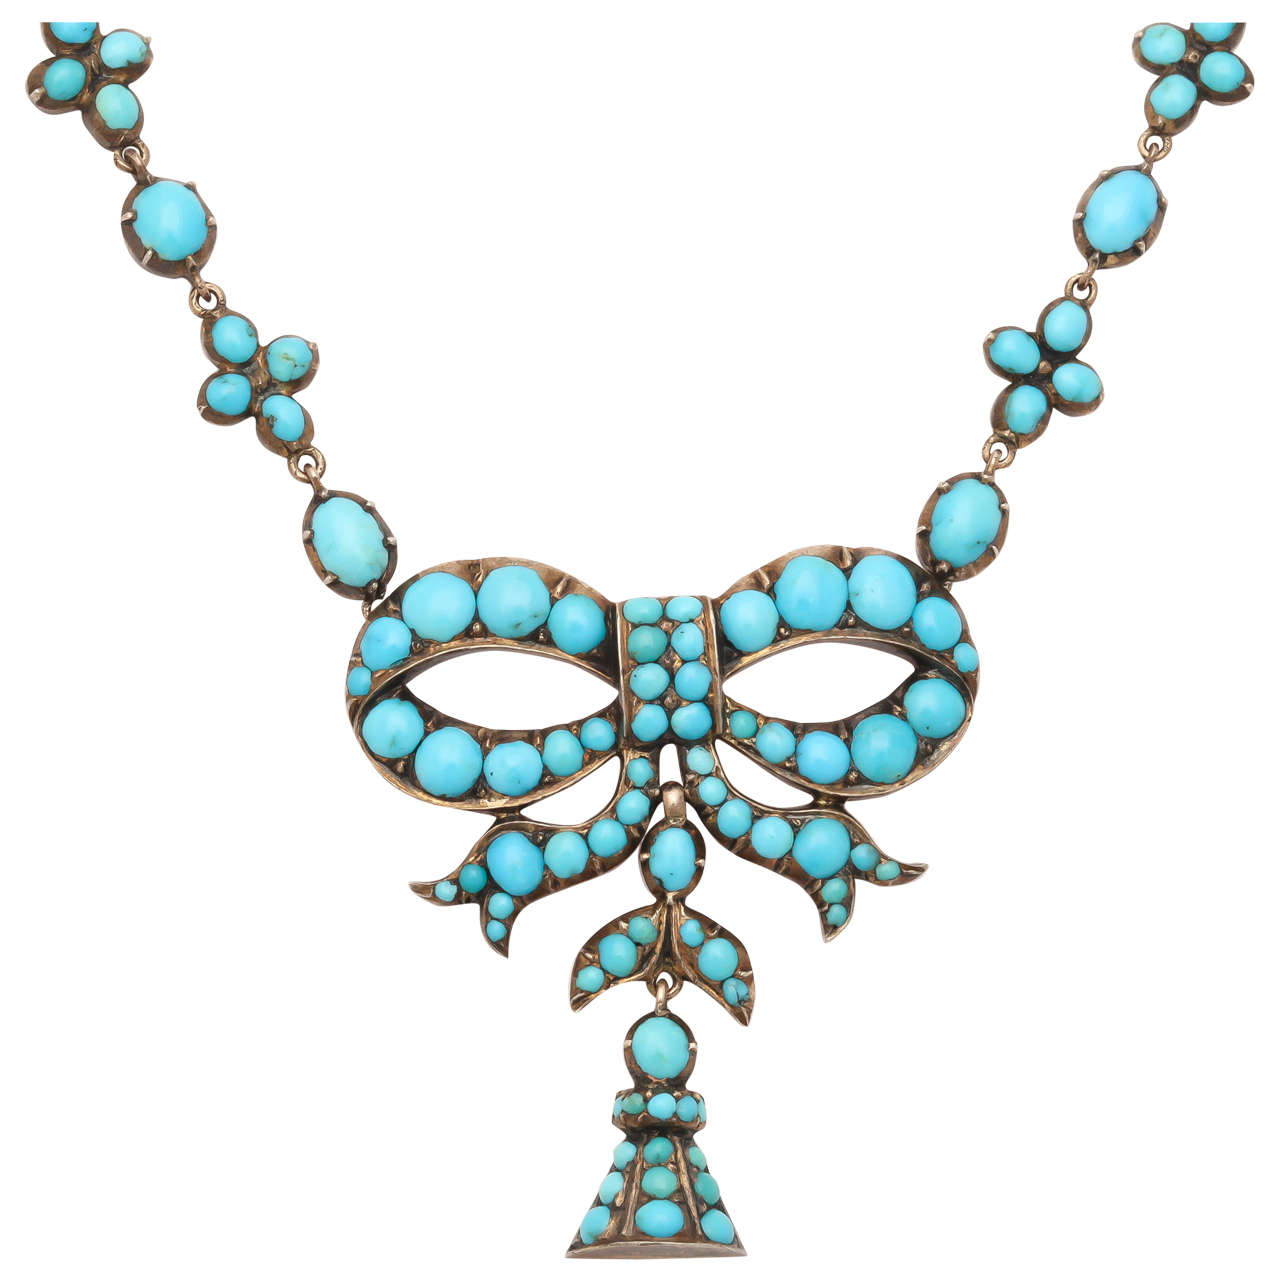 The Intimate Victorian Turquoise Necklace 1